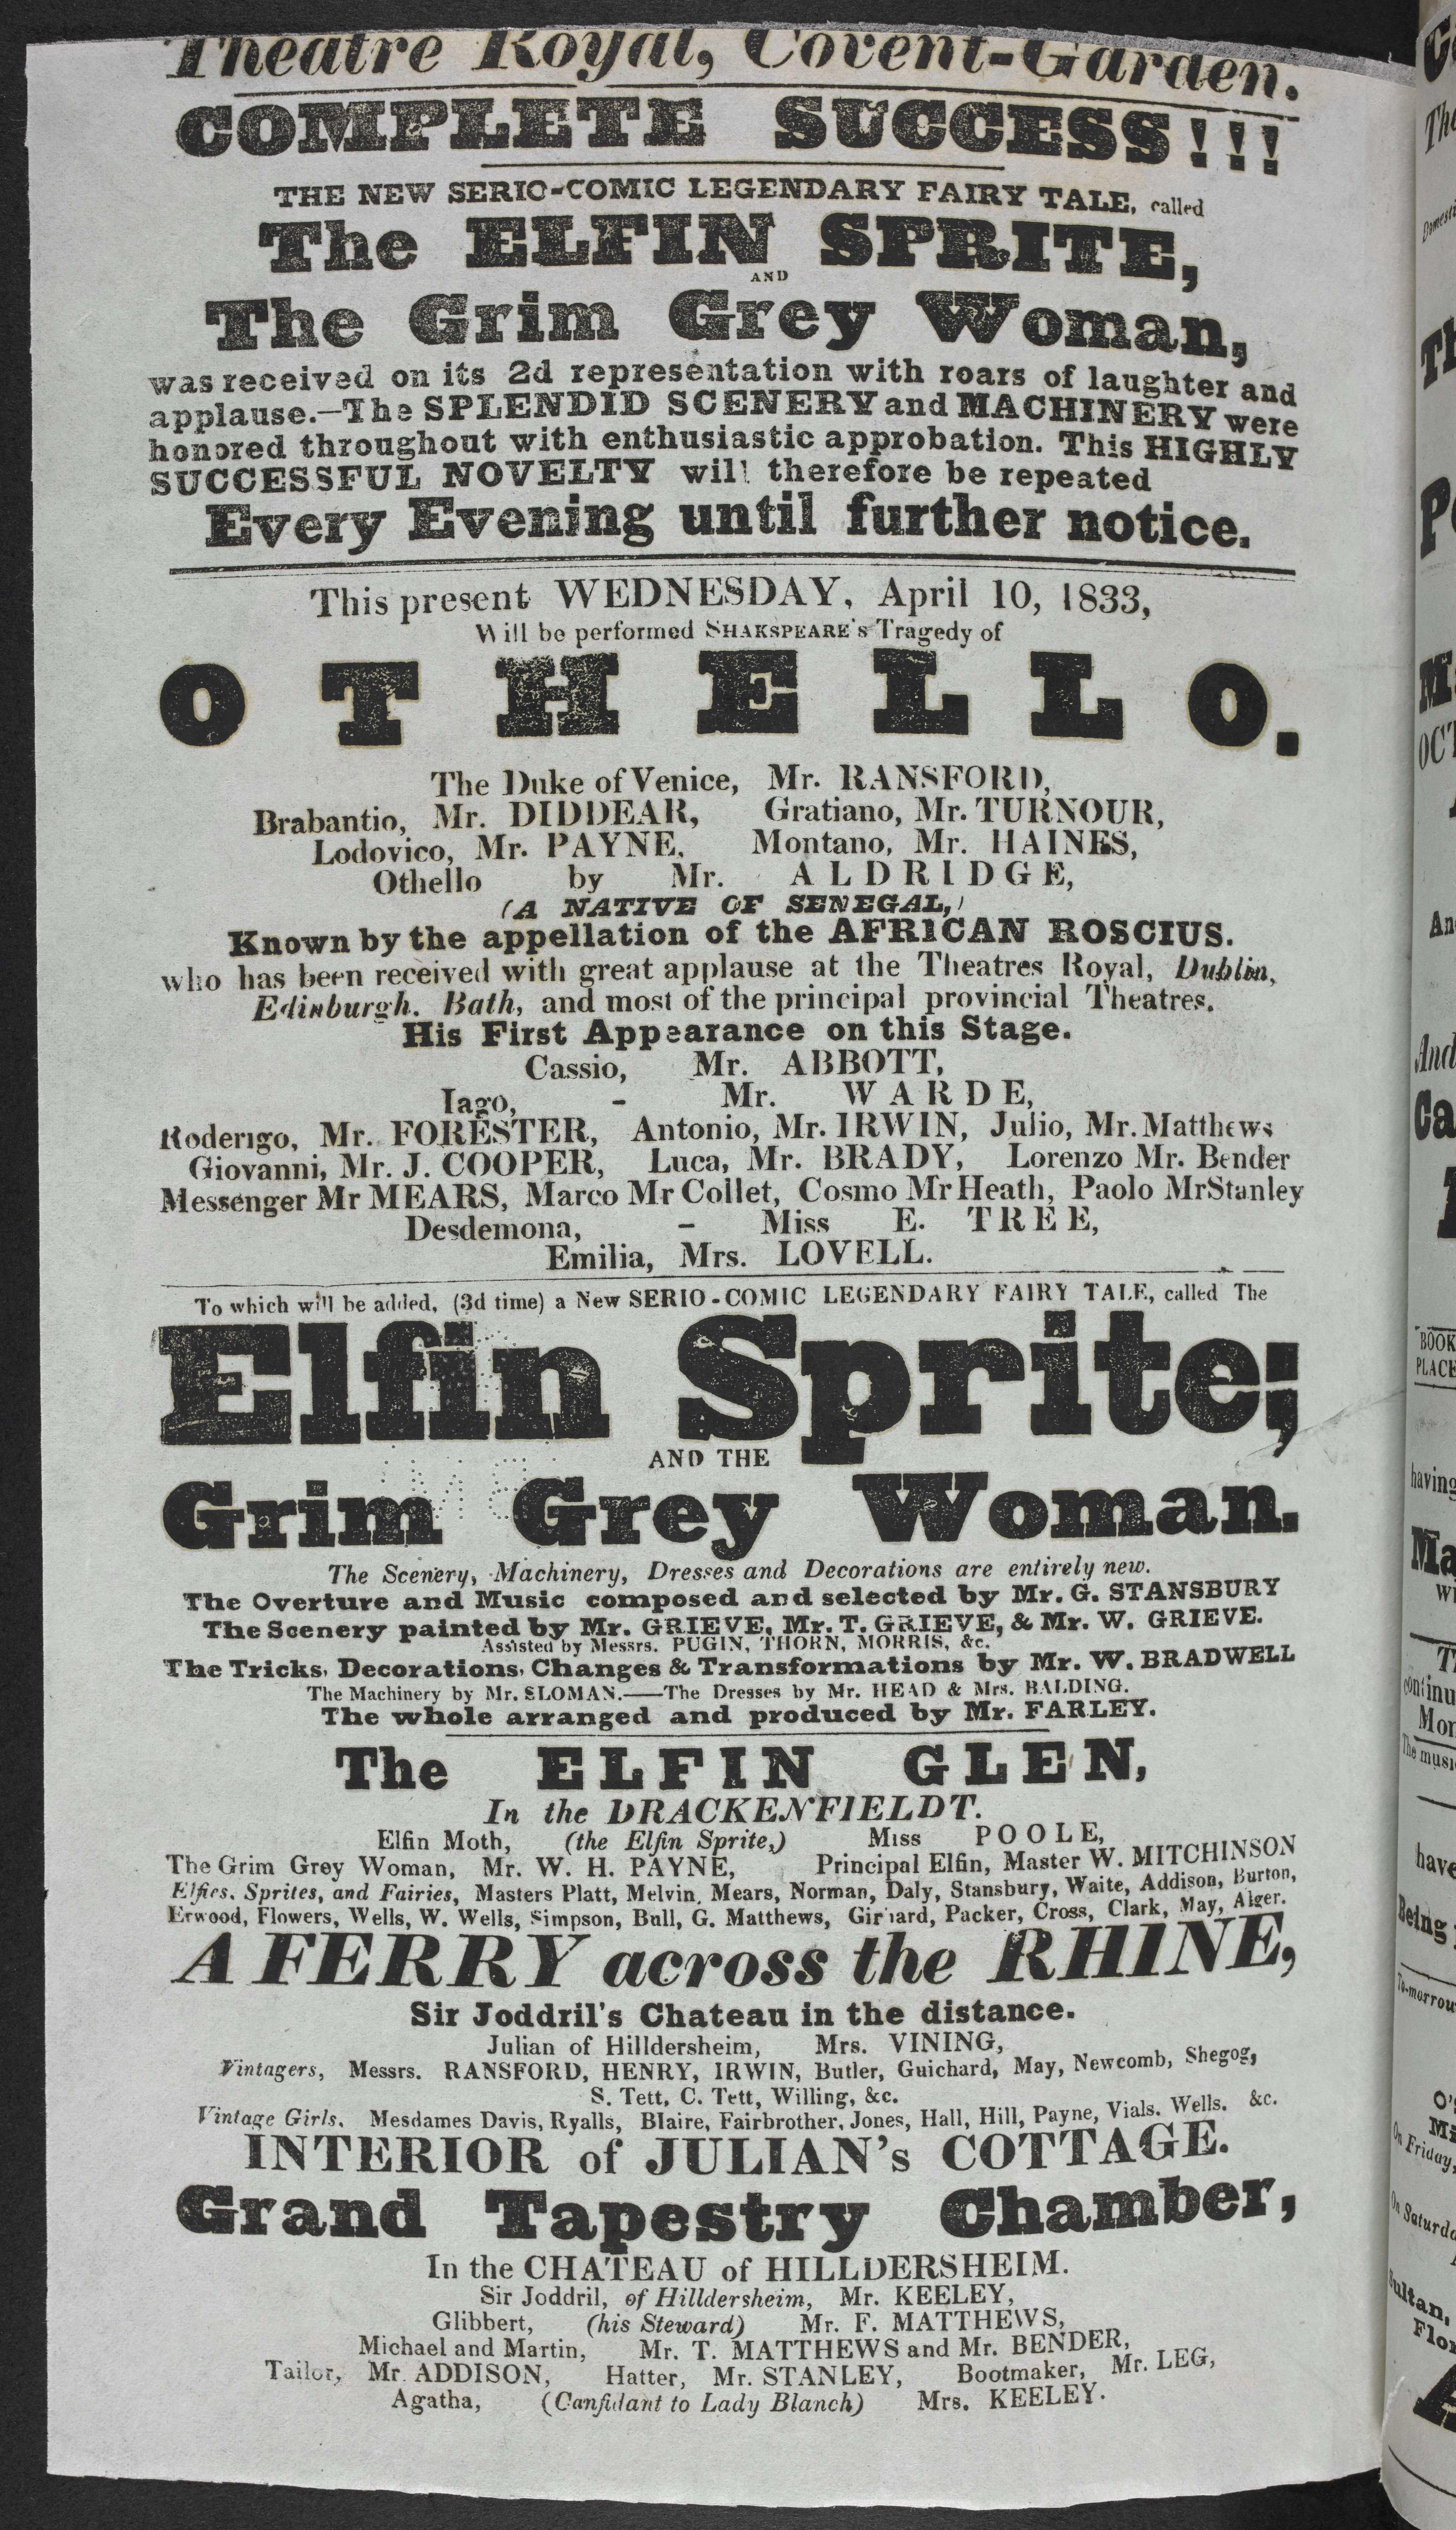 Playbill for Ira Aldridge's performance as Othello at the Theatre Royal, Covent Garden, 10 April 1833 to go on display in 'Shakespeare in Ten Acts'